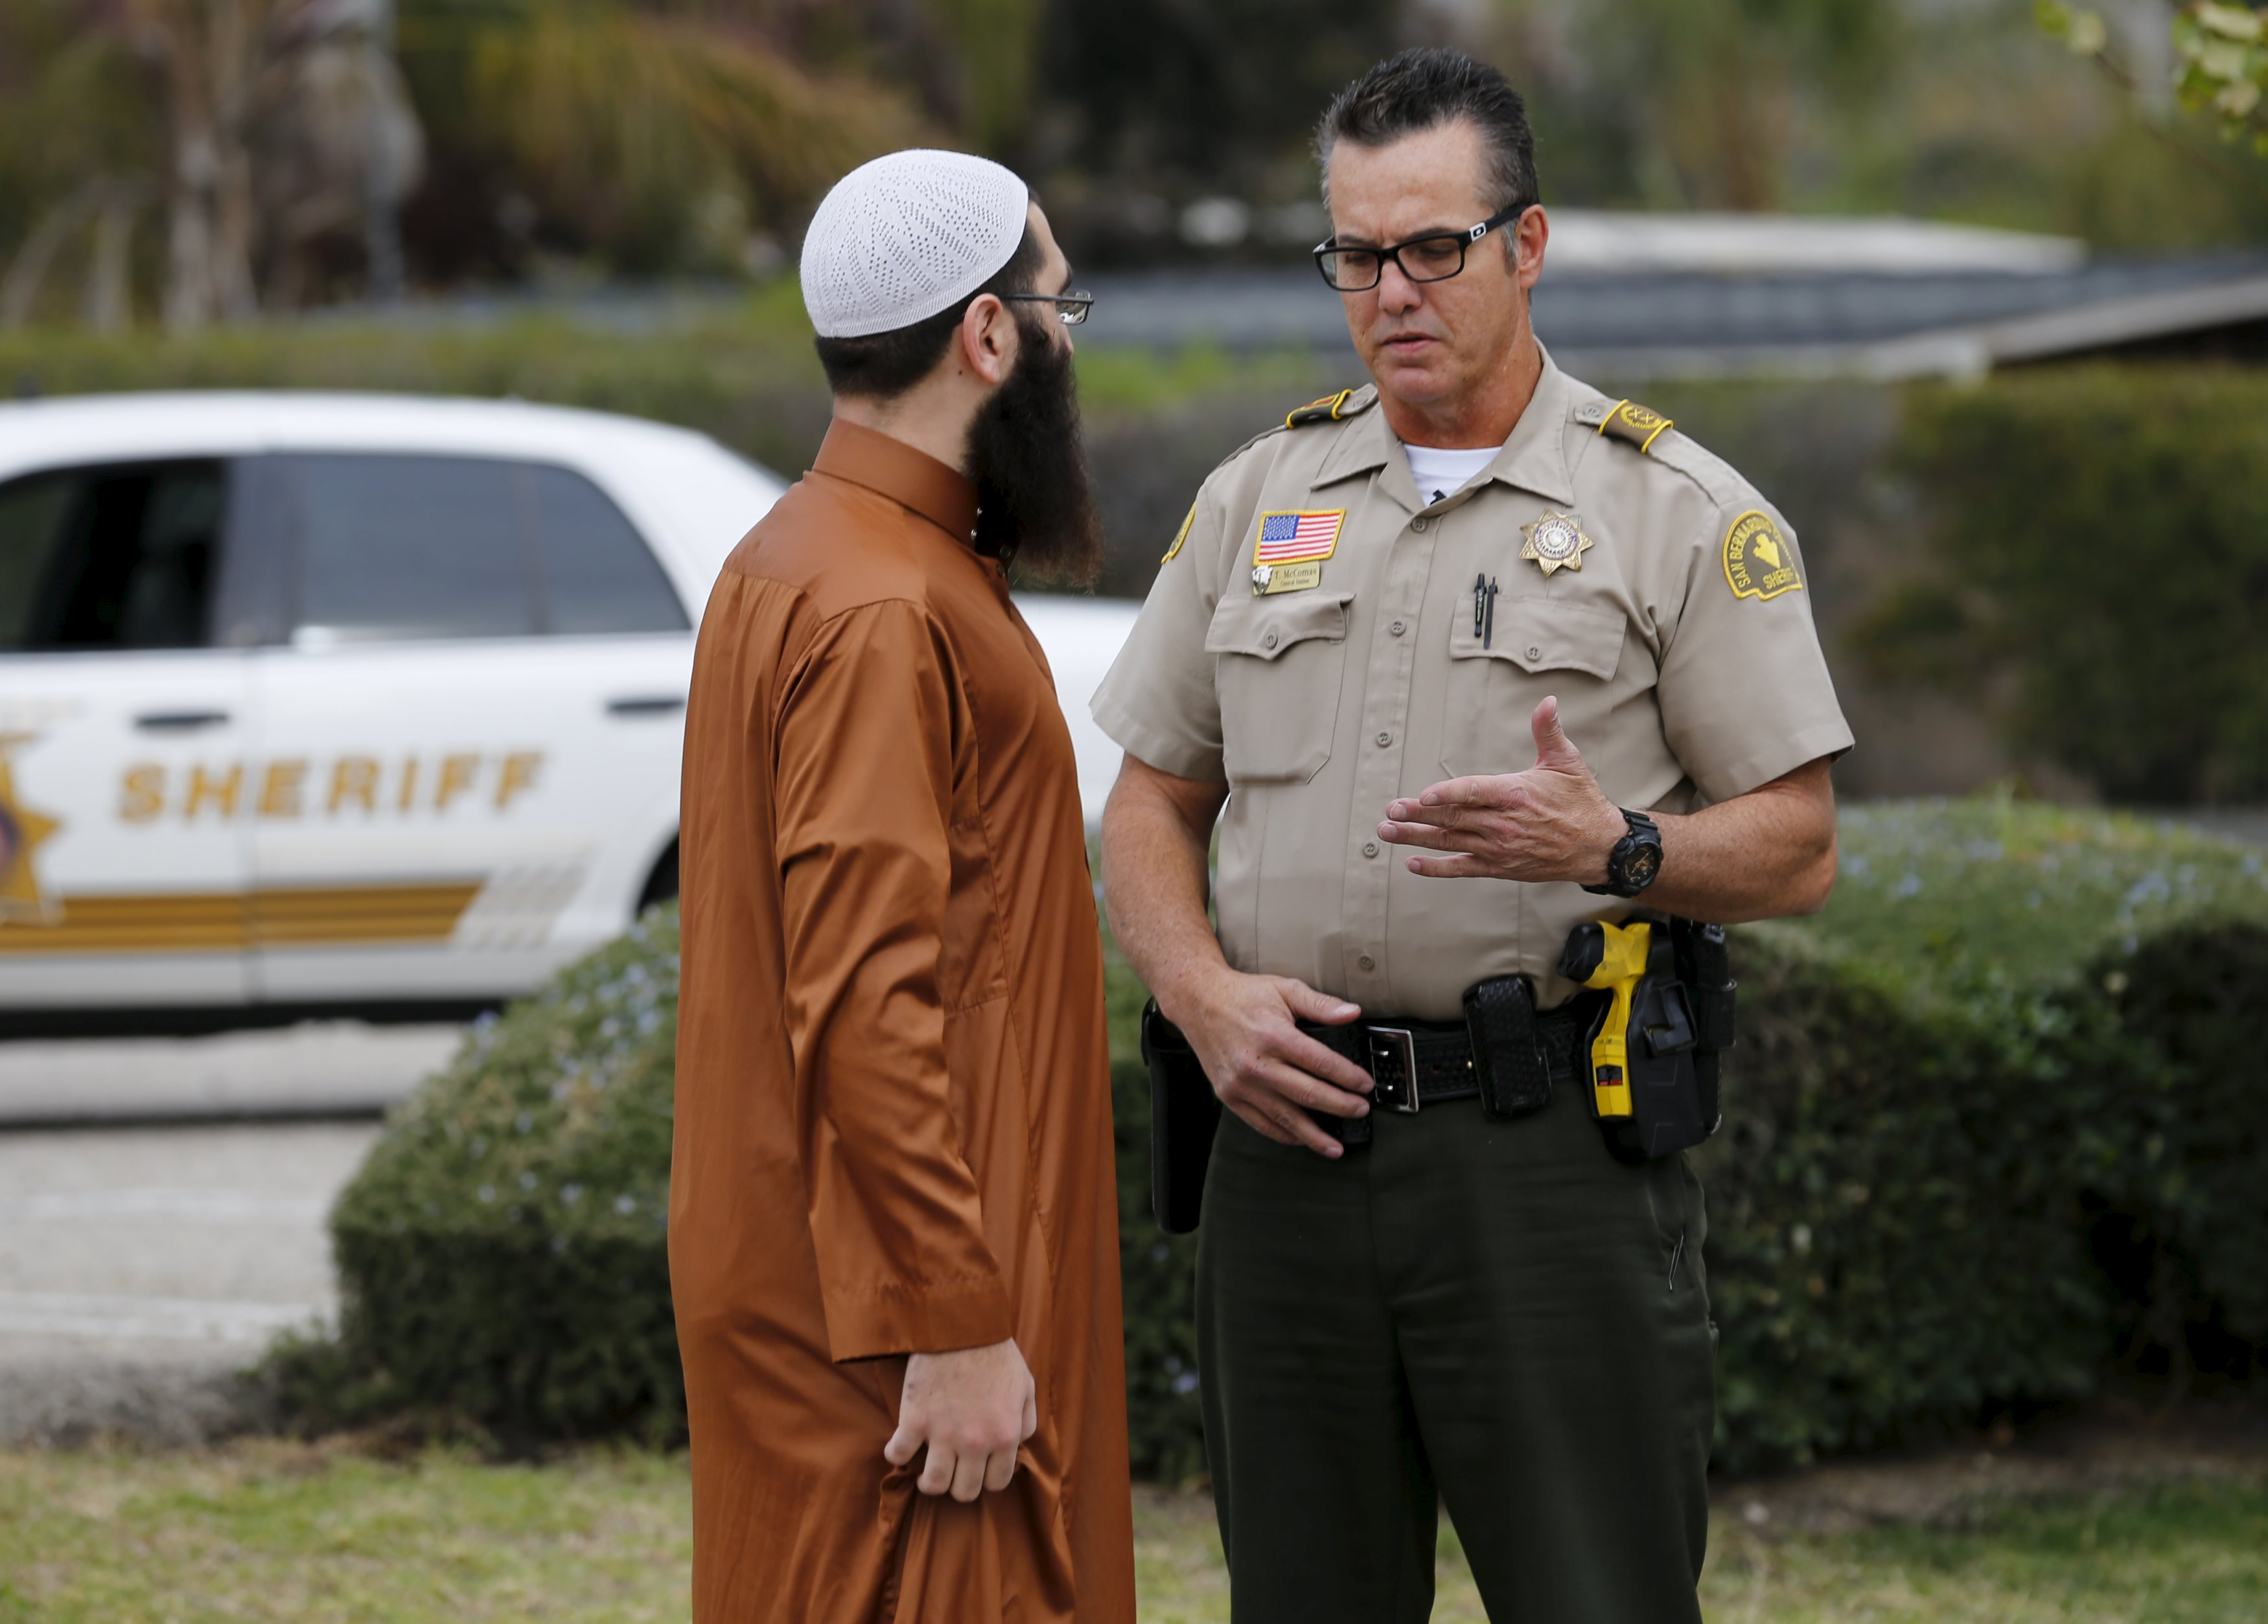 california muslim California's muslim community expressed its horror at the mass shooting that killed at least 14 in san bernardino, after a local muslim man was widely identified as a suspect.